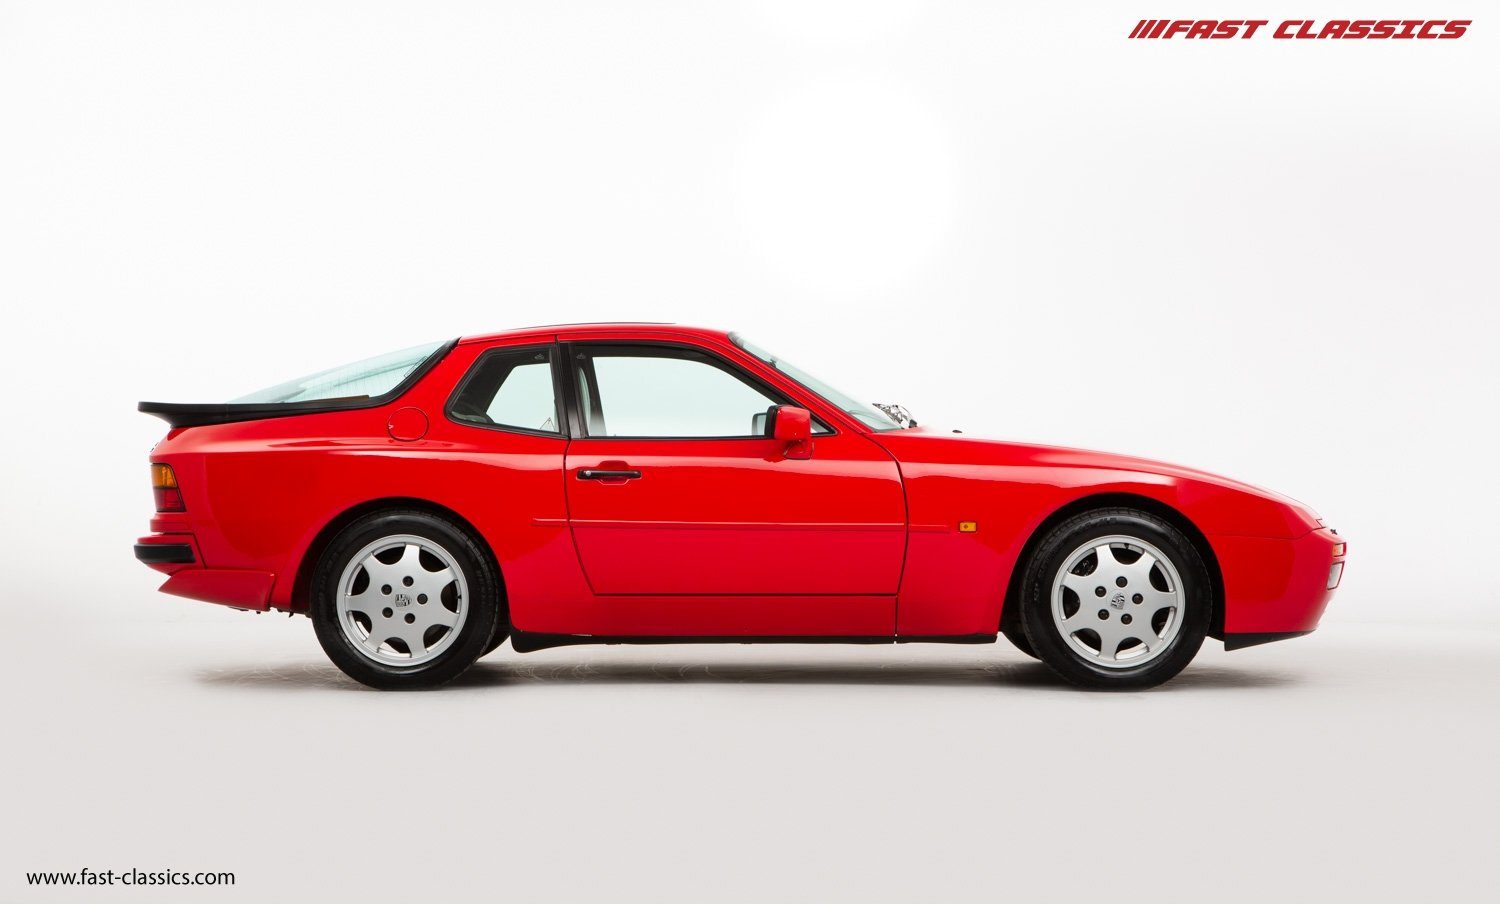 1990 PORSCHE 944 S2 // STUNNING GUARDS RED // 27K MILES // FAMILY For Sale (picture 1 of 23)